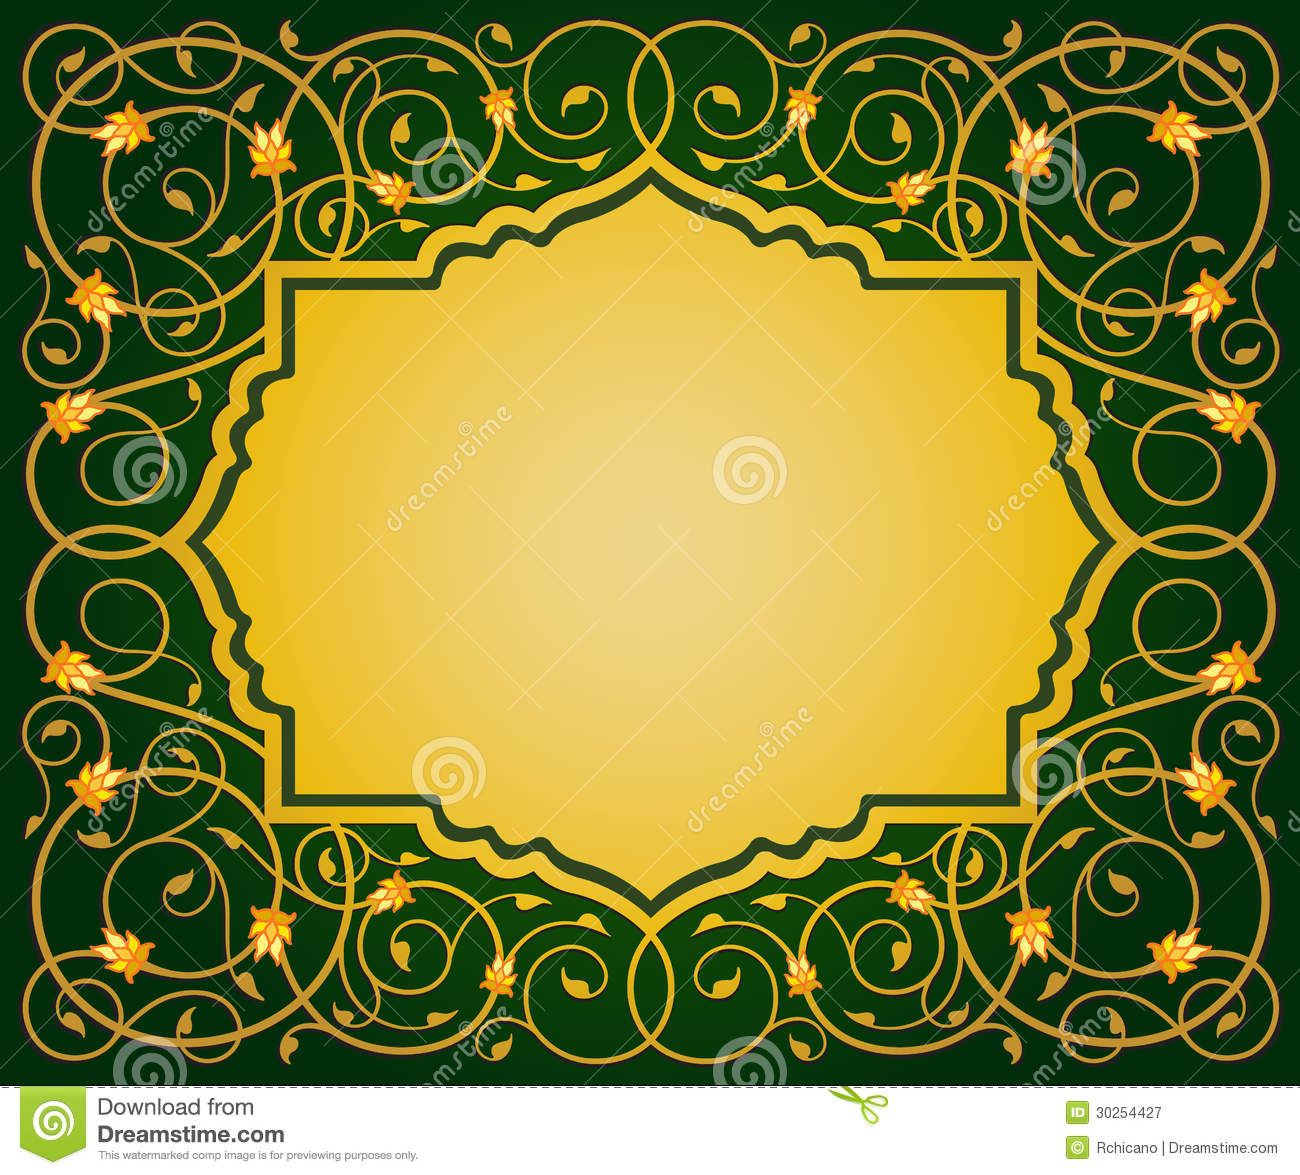 Islamic floral art border stock vector illustration of gold 30254427 islamic floral art border toneelgroepblik Image collections